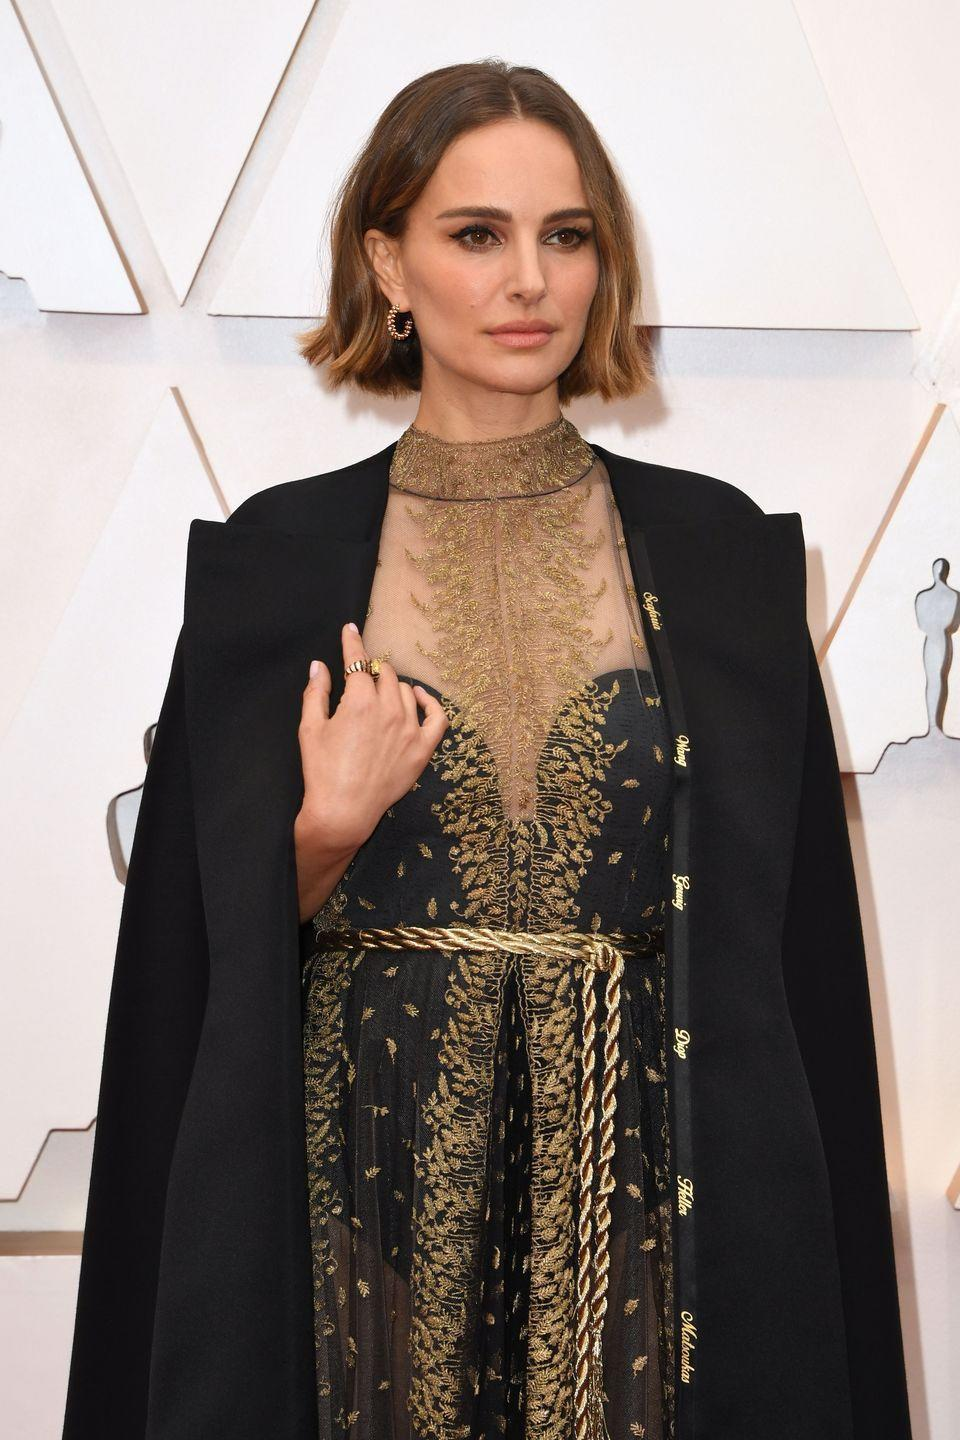 """<p>Natalie Portman used her Oscars outfit by Dior to call attention to the fact that the year's Best Director nominees were all men. Along the lining of her cape, she had names of female directors embroidered in gold. She <a href=""""https://www.harpersbazaar.com/celebrity/latest/a30839778/natalie-portman-female-directors-cape-oscars-2020/"""" rel=""""nofollow noopener"""" target=""""_blank"""" data-ylk=""""slk:explained ahead of the ceremony"""" class=""""link rapid-noclick-resp"""">explained ahead of the ceremony</a>, """"I wanted to recognize the women who were not recognized for their incredible work this year in my subtle way.""""</p>"""